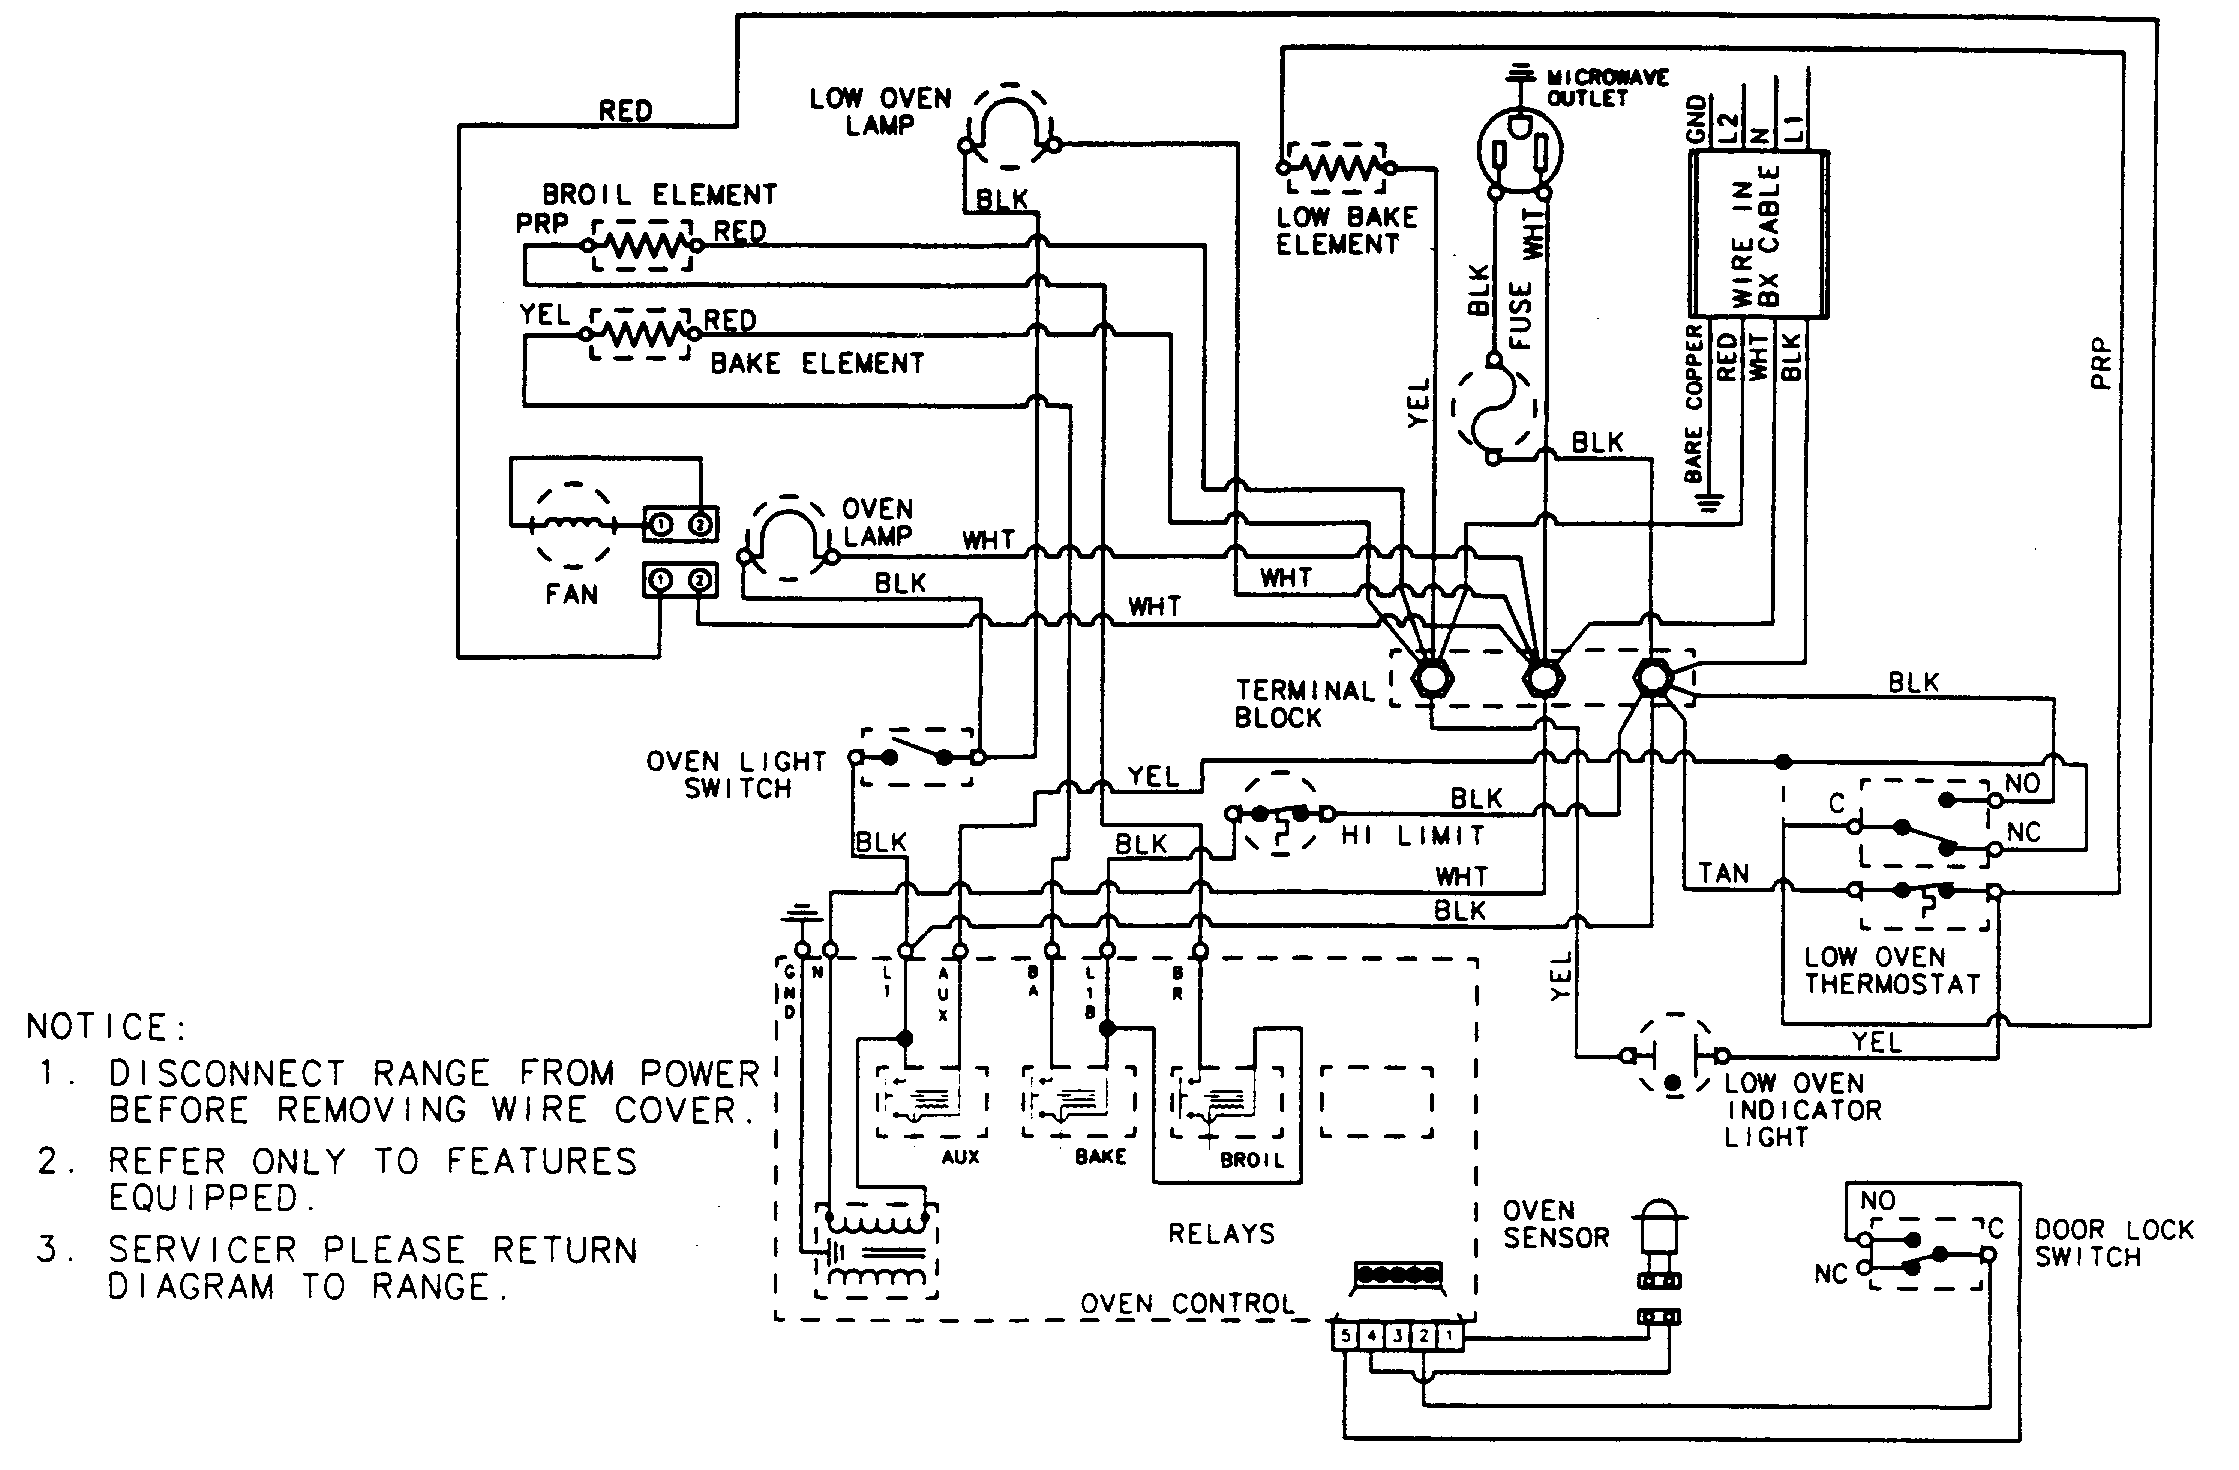 Whirlpool Oven Wiring Schematic Diagrams Click Diagram For Maytag Gemini Double Data Electric Dryer